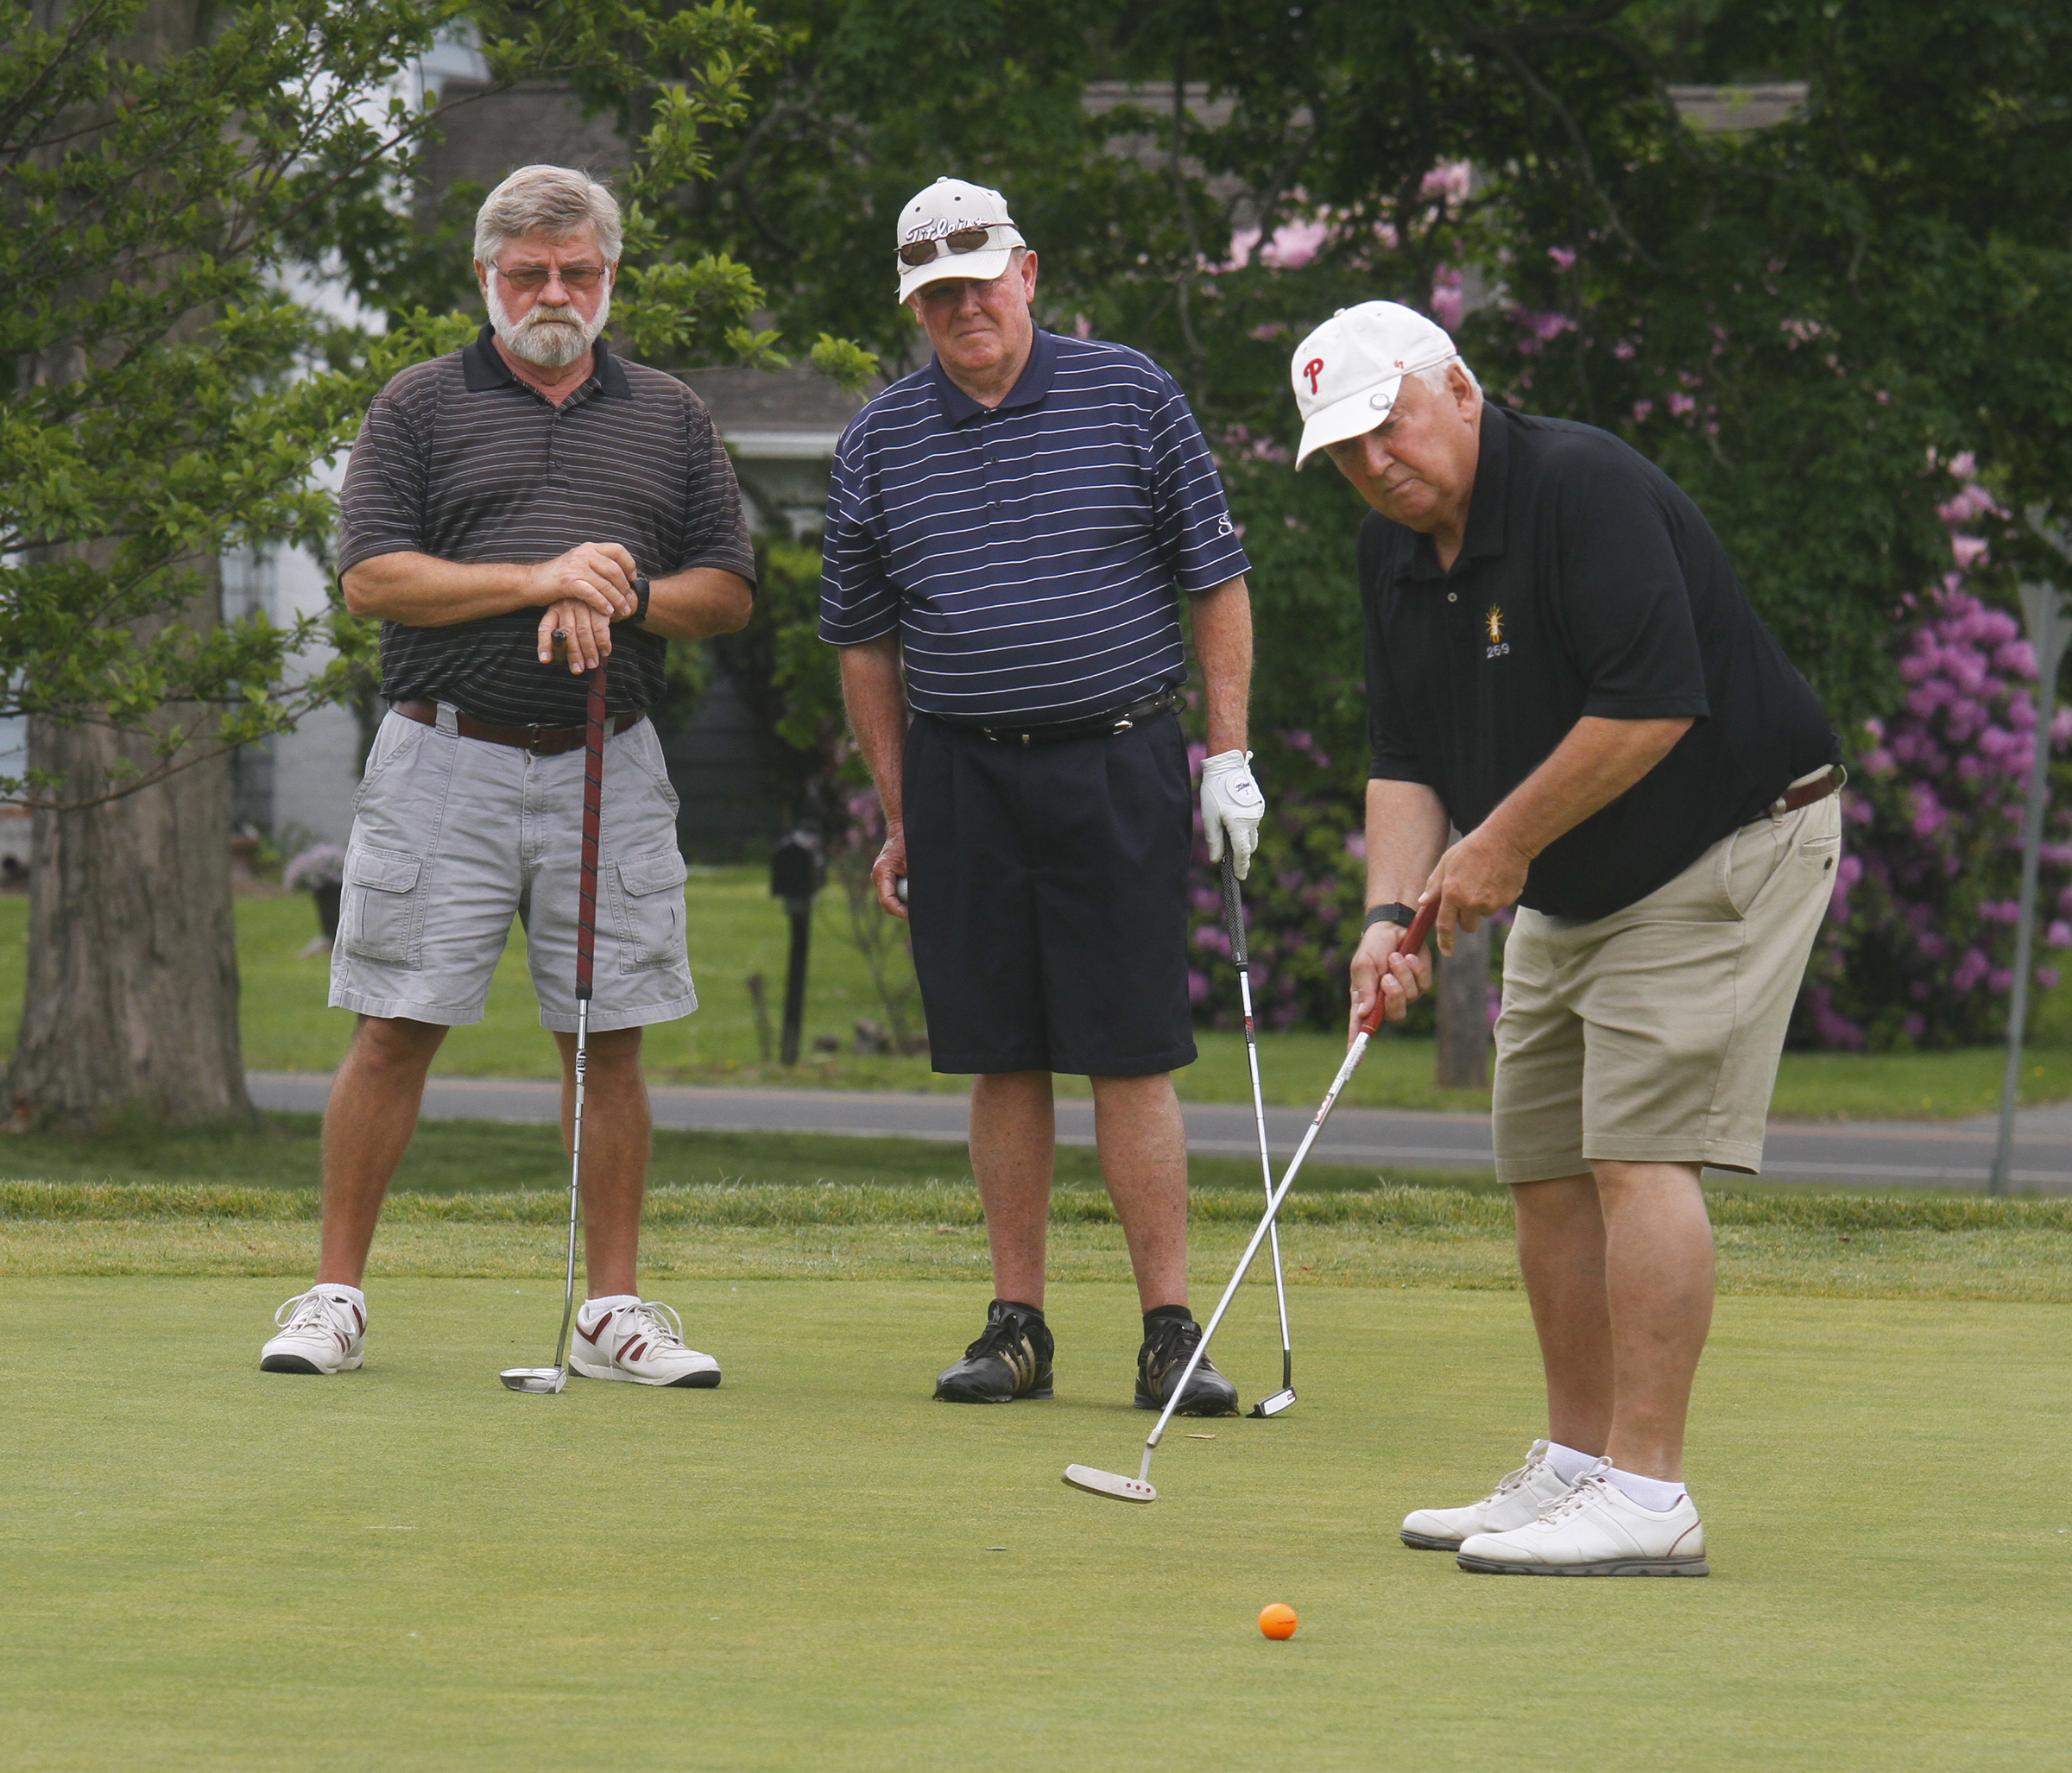 Wayne P. DeAngelo Golf Outing, May 24, 2017, Mountain View Golf Club. IBEW local 269 (Trenton) L-R, Sunny Canimore and Tom Bates Jr watch Tom O'Connor putt.